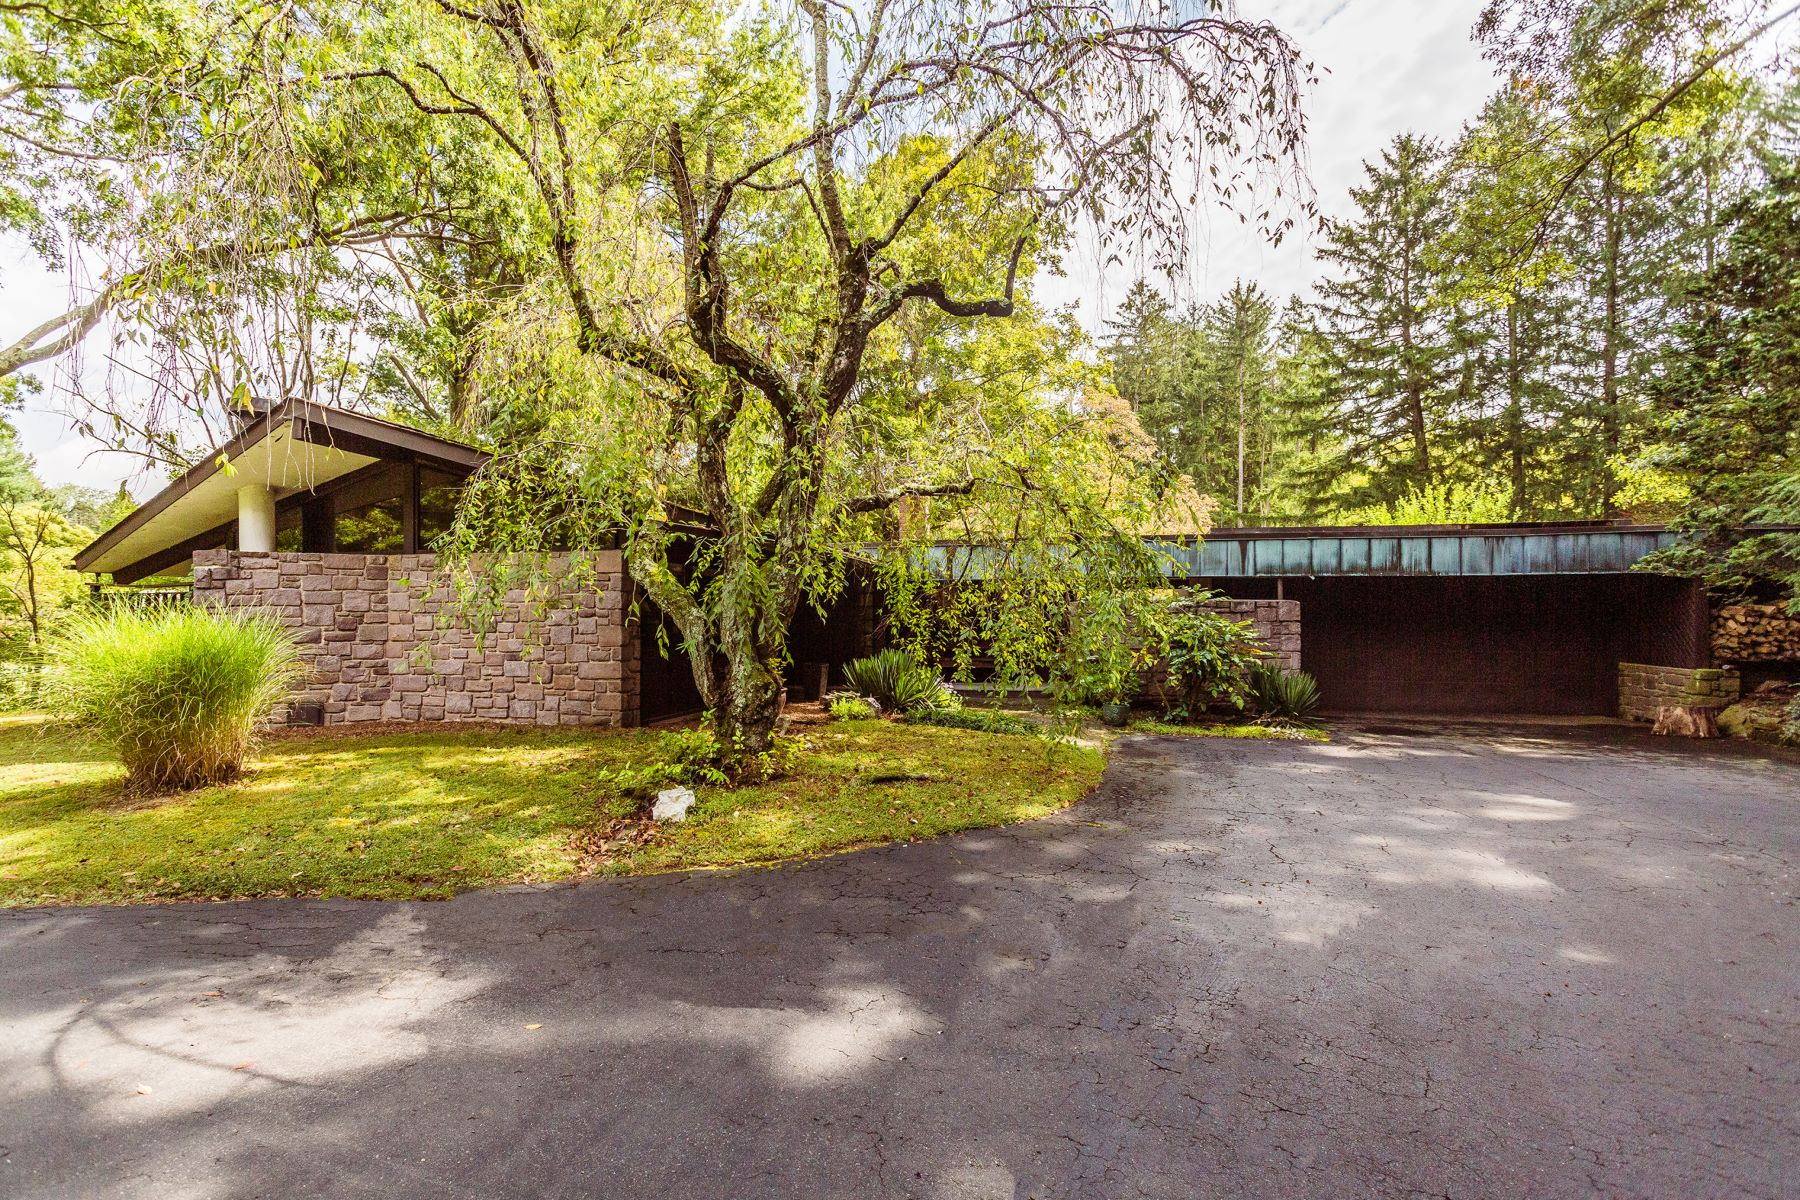 Single Family Homes for Sale at 881 SPRING VALLEY RD Doylestown, Pennsylvania 18901 United States